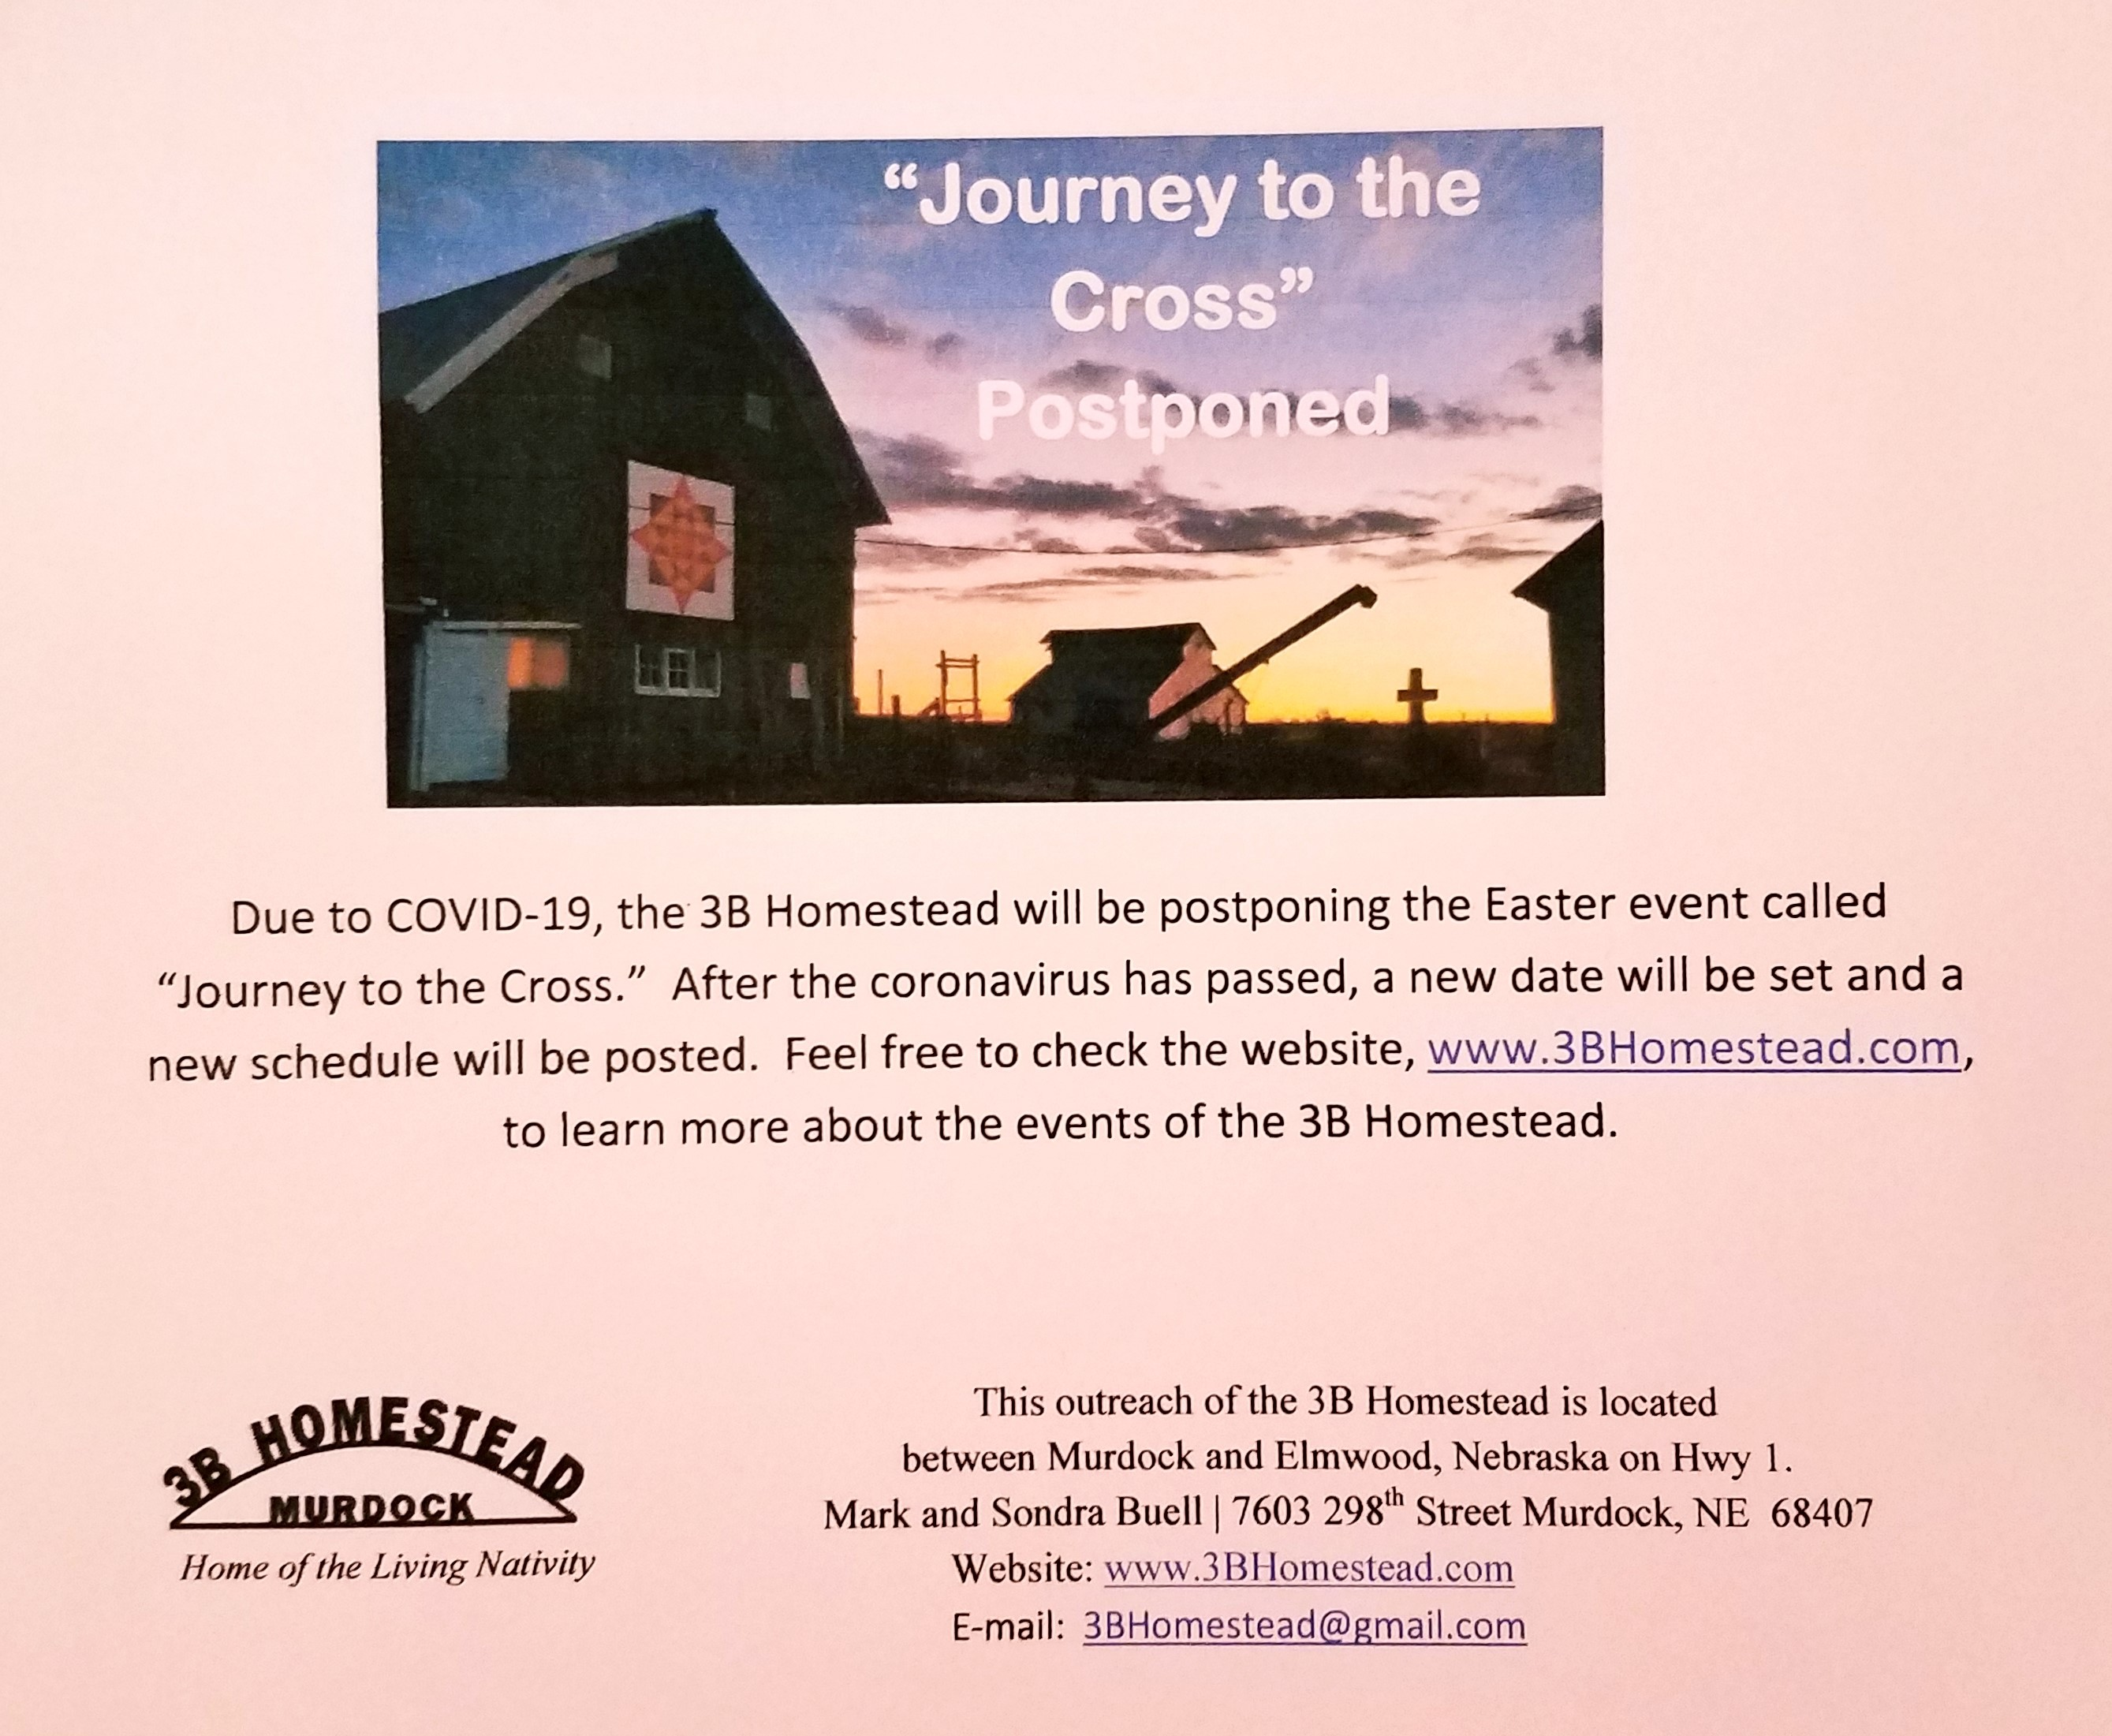 Journey to the Cross Postponed1